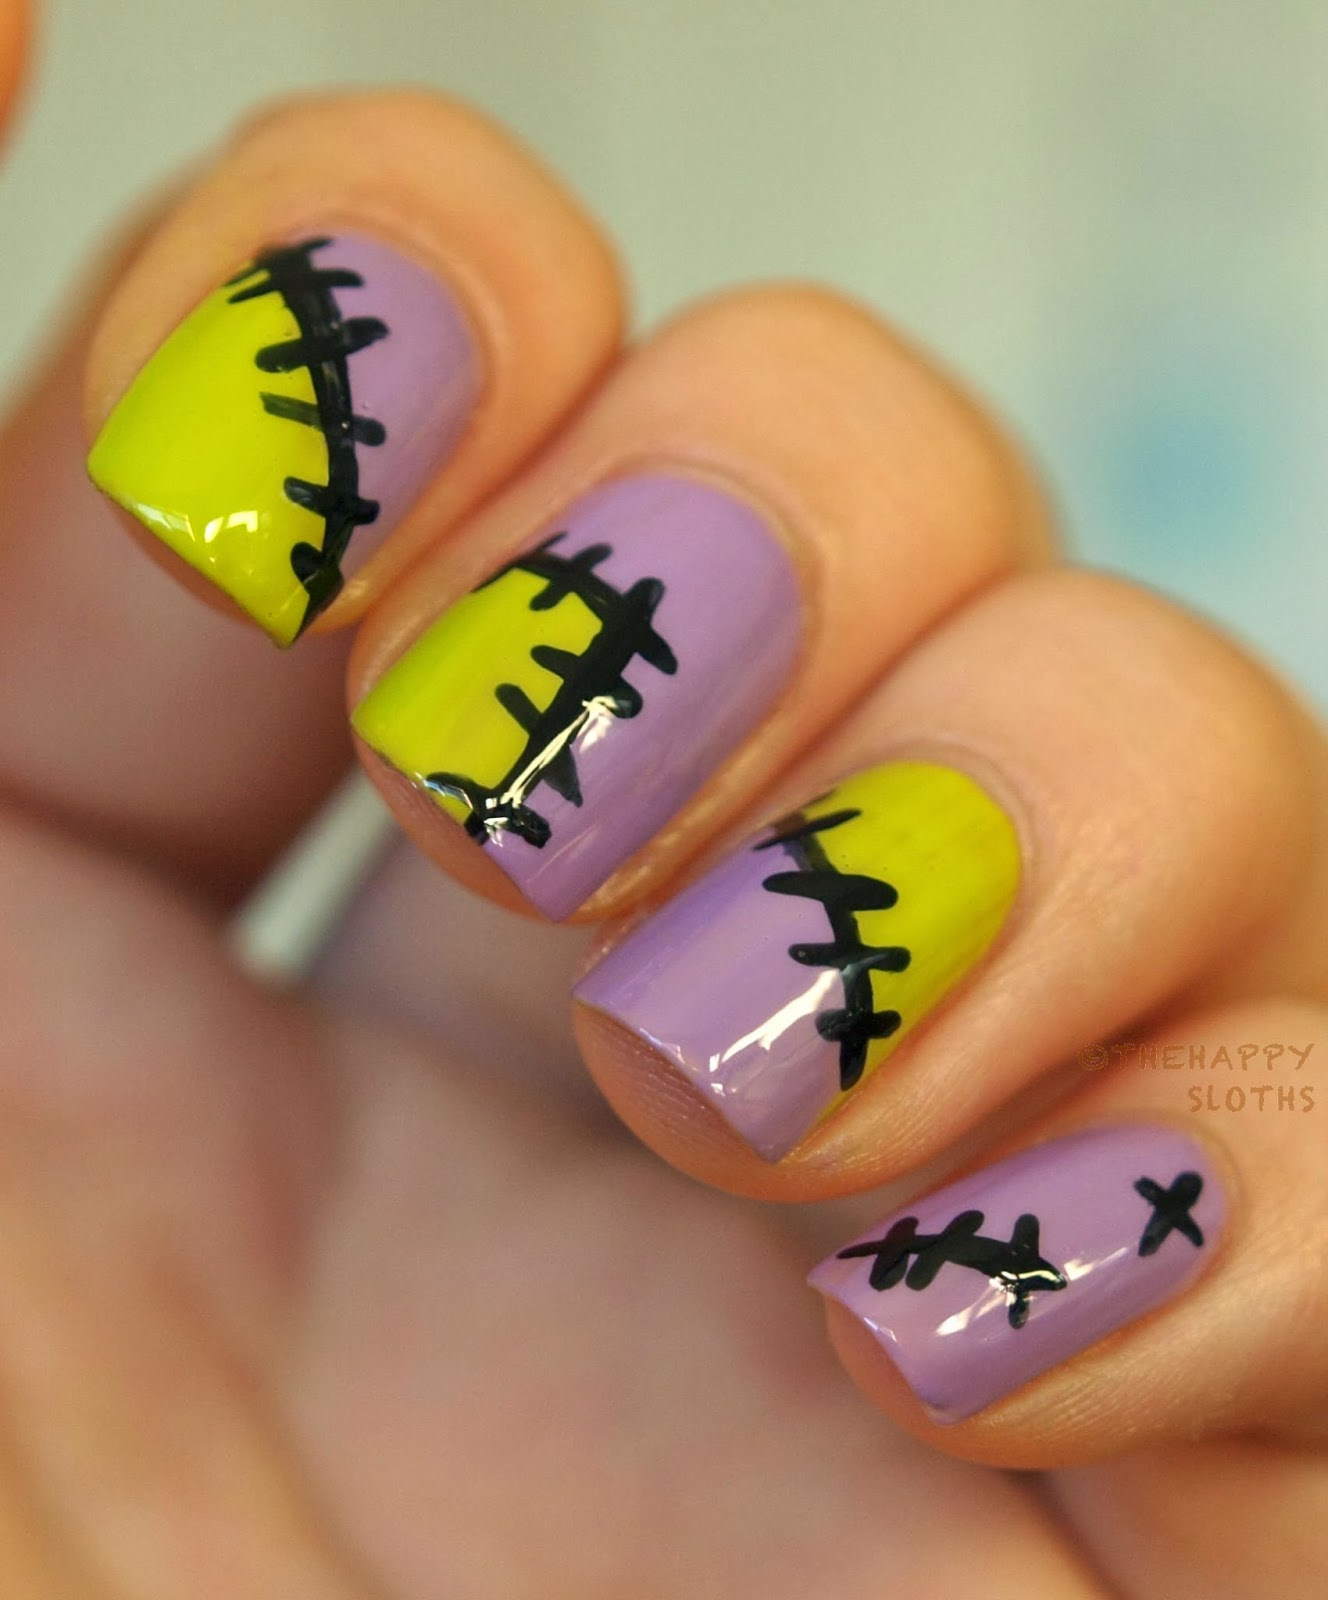 All Patched Up: Halloween Nail Art Design | The Happy Sloths: Beauty ...